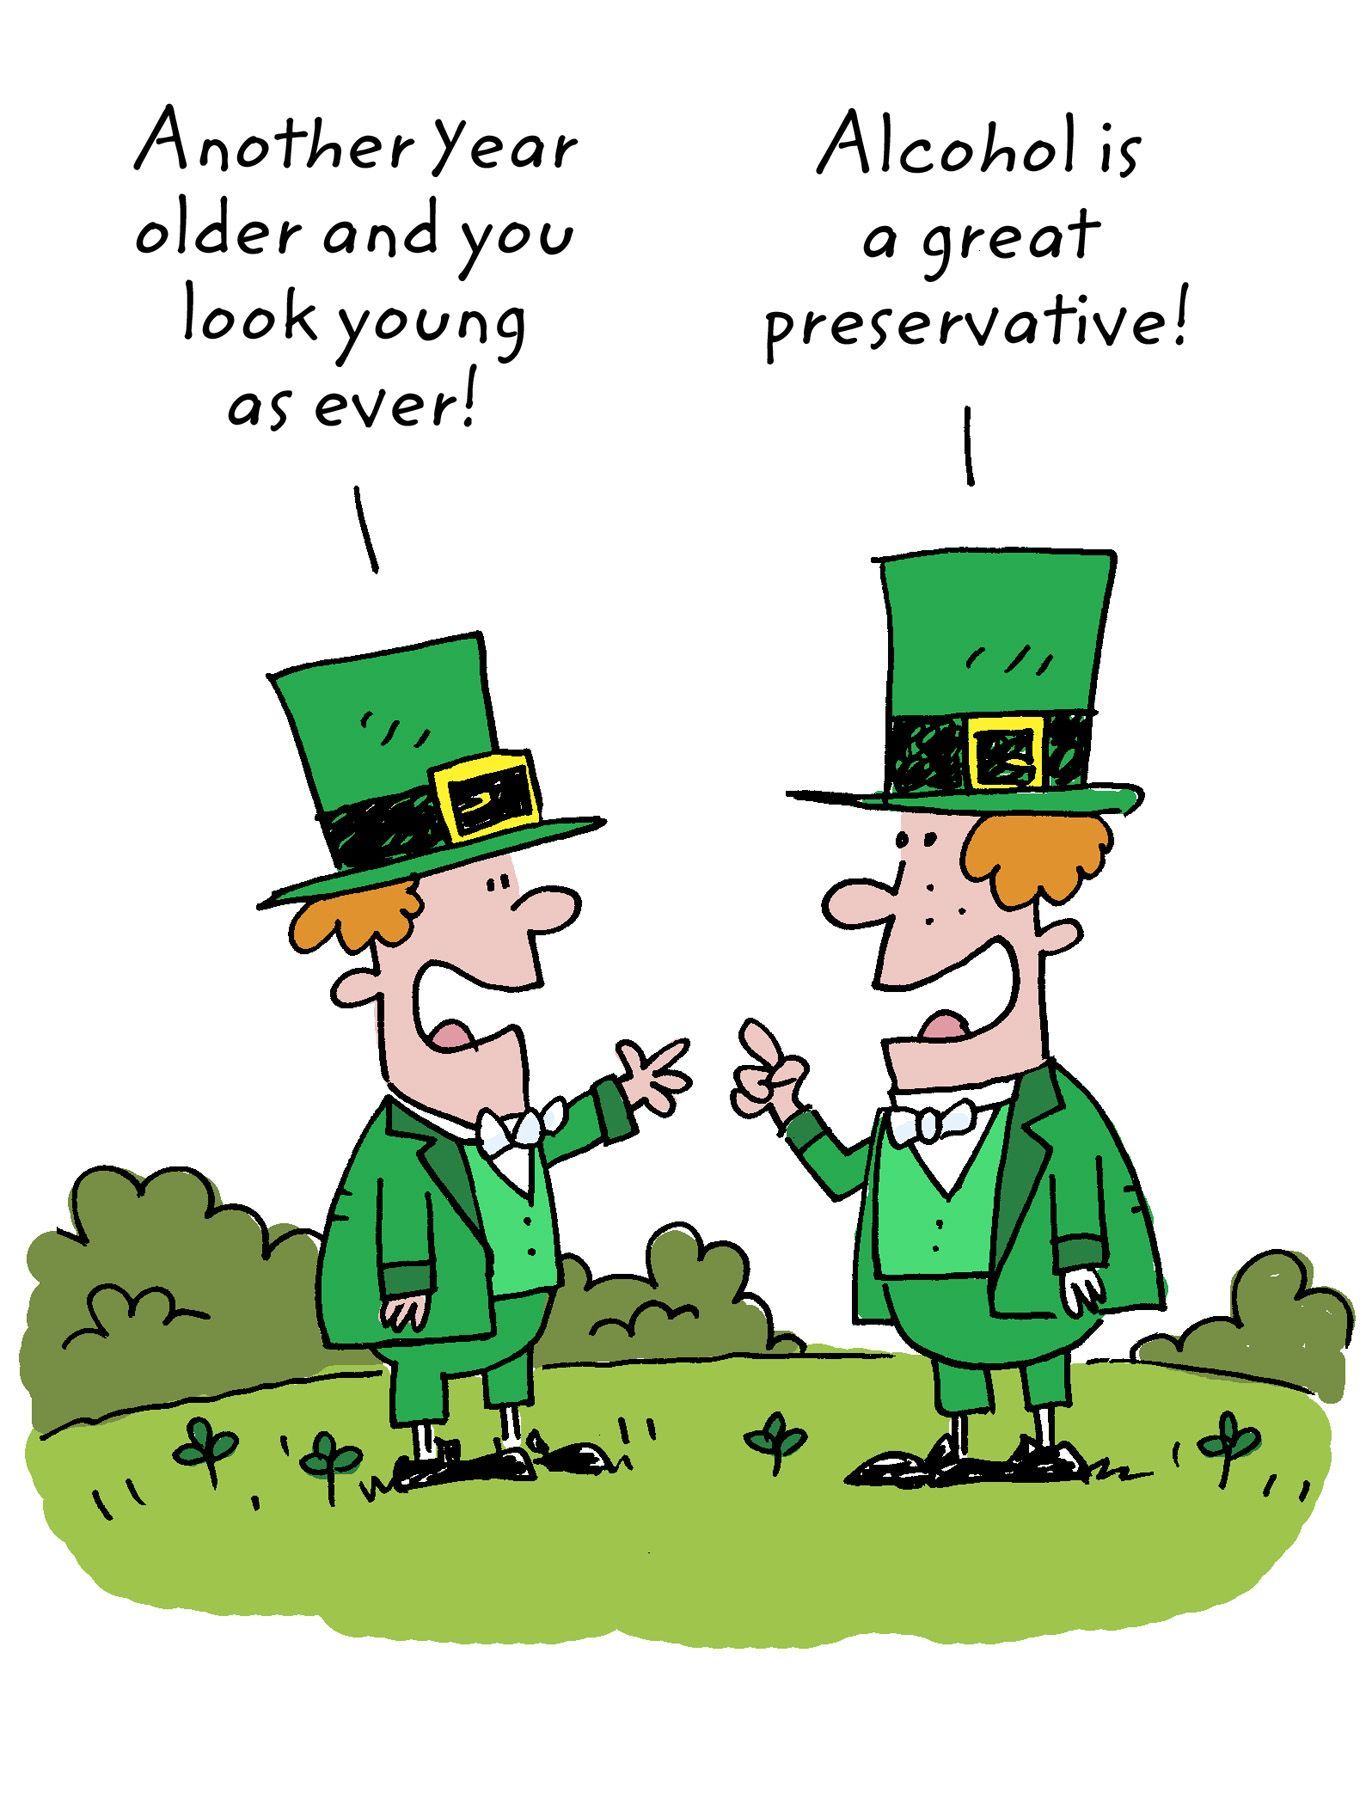 Funny St. Patrick's Day cartoon. Alcohol preserves ) St